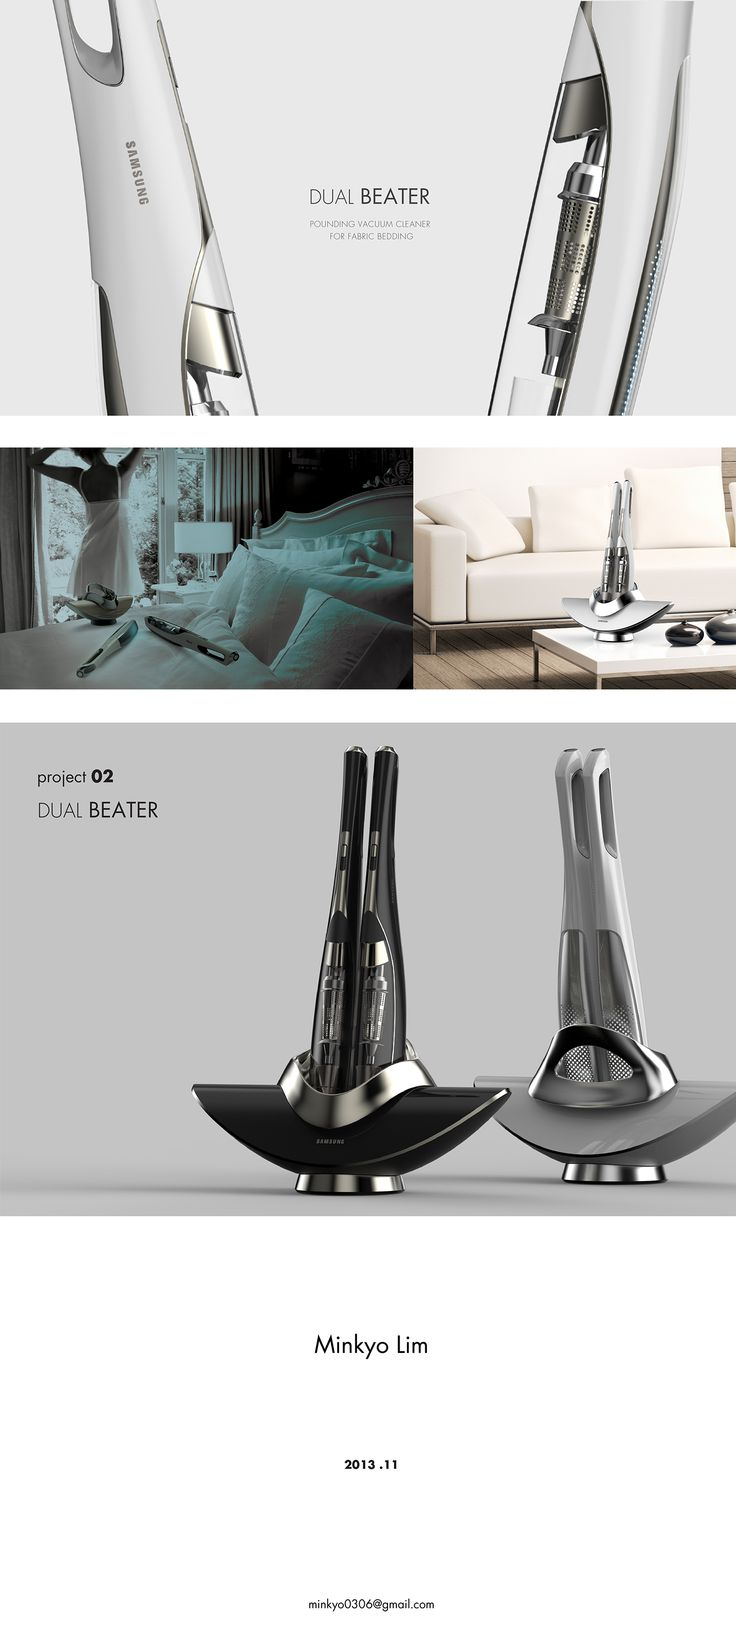 http://www.2uidea.com/category/Vacuum-Cleaner/ POUNDING VACUUM CLEANER FOR FABRIC BEDDING